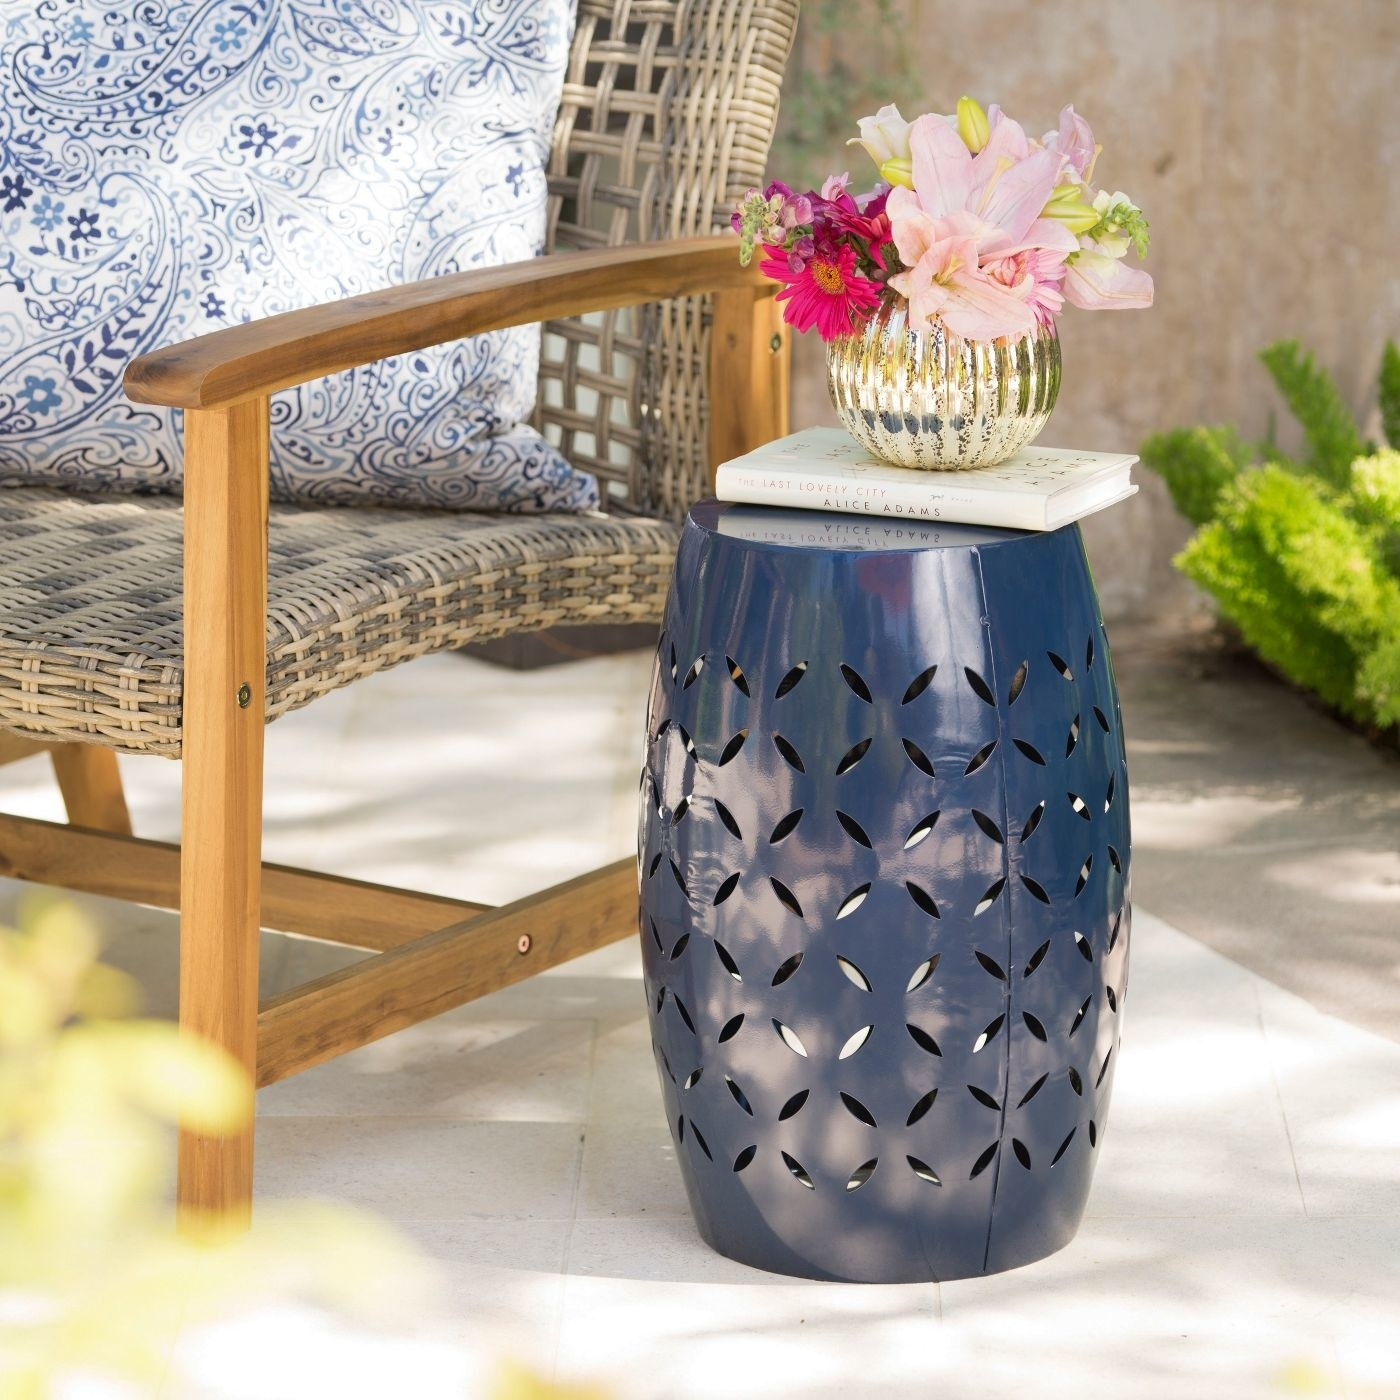 a blue vase with cut outs around it